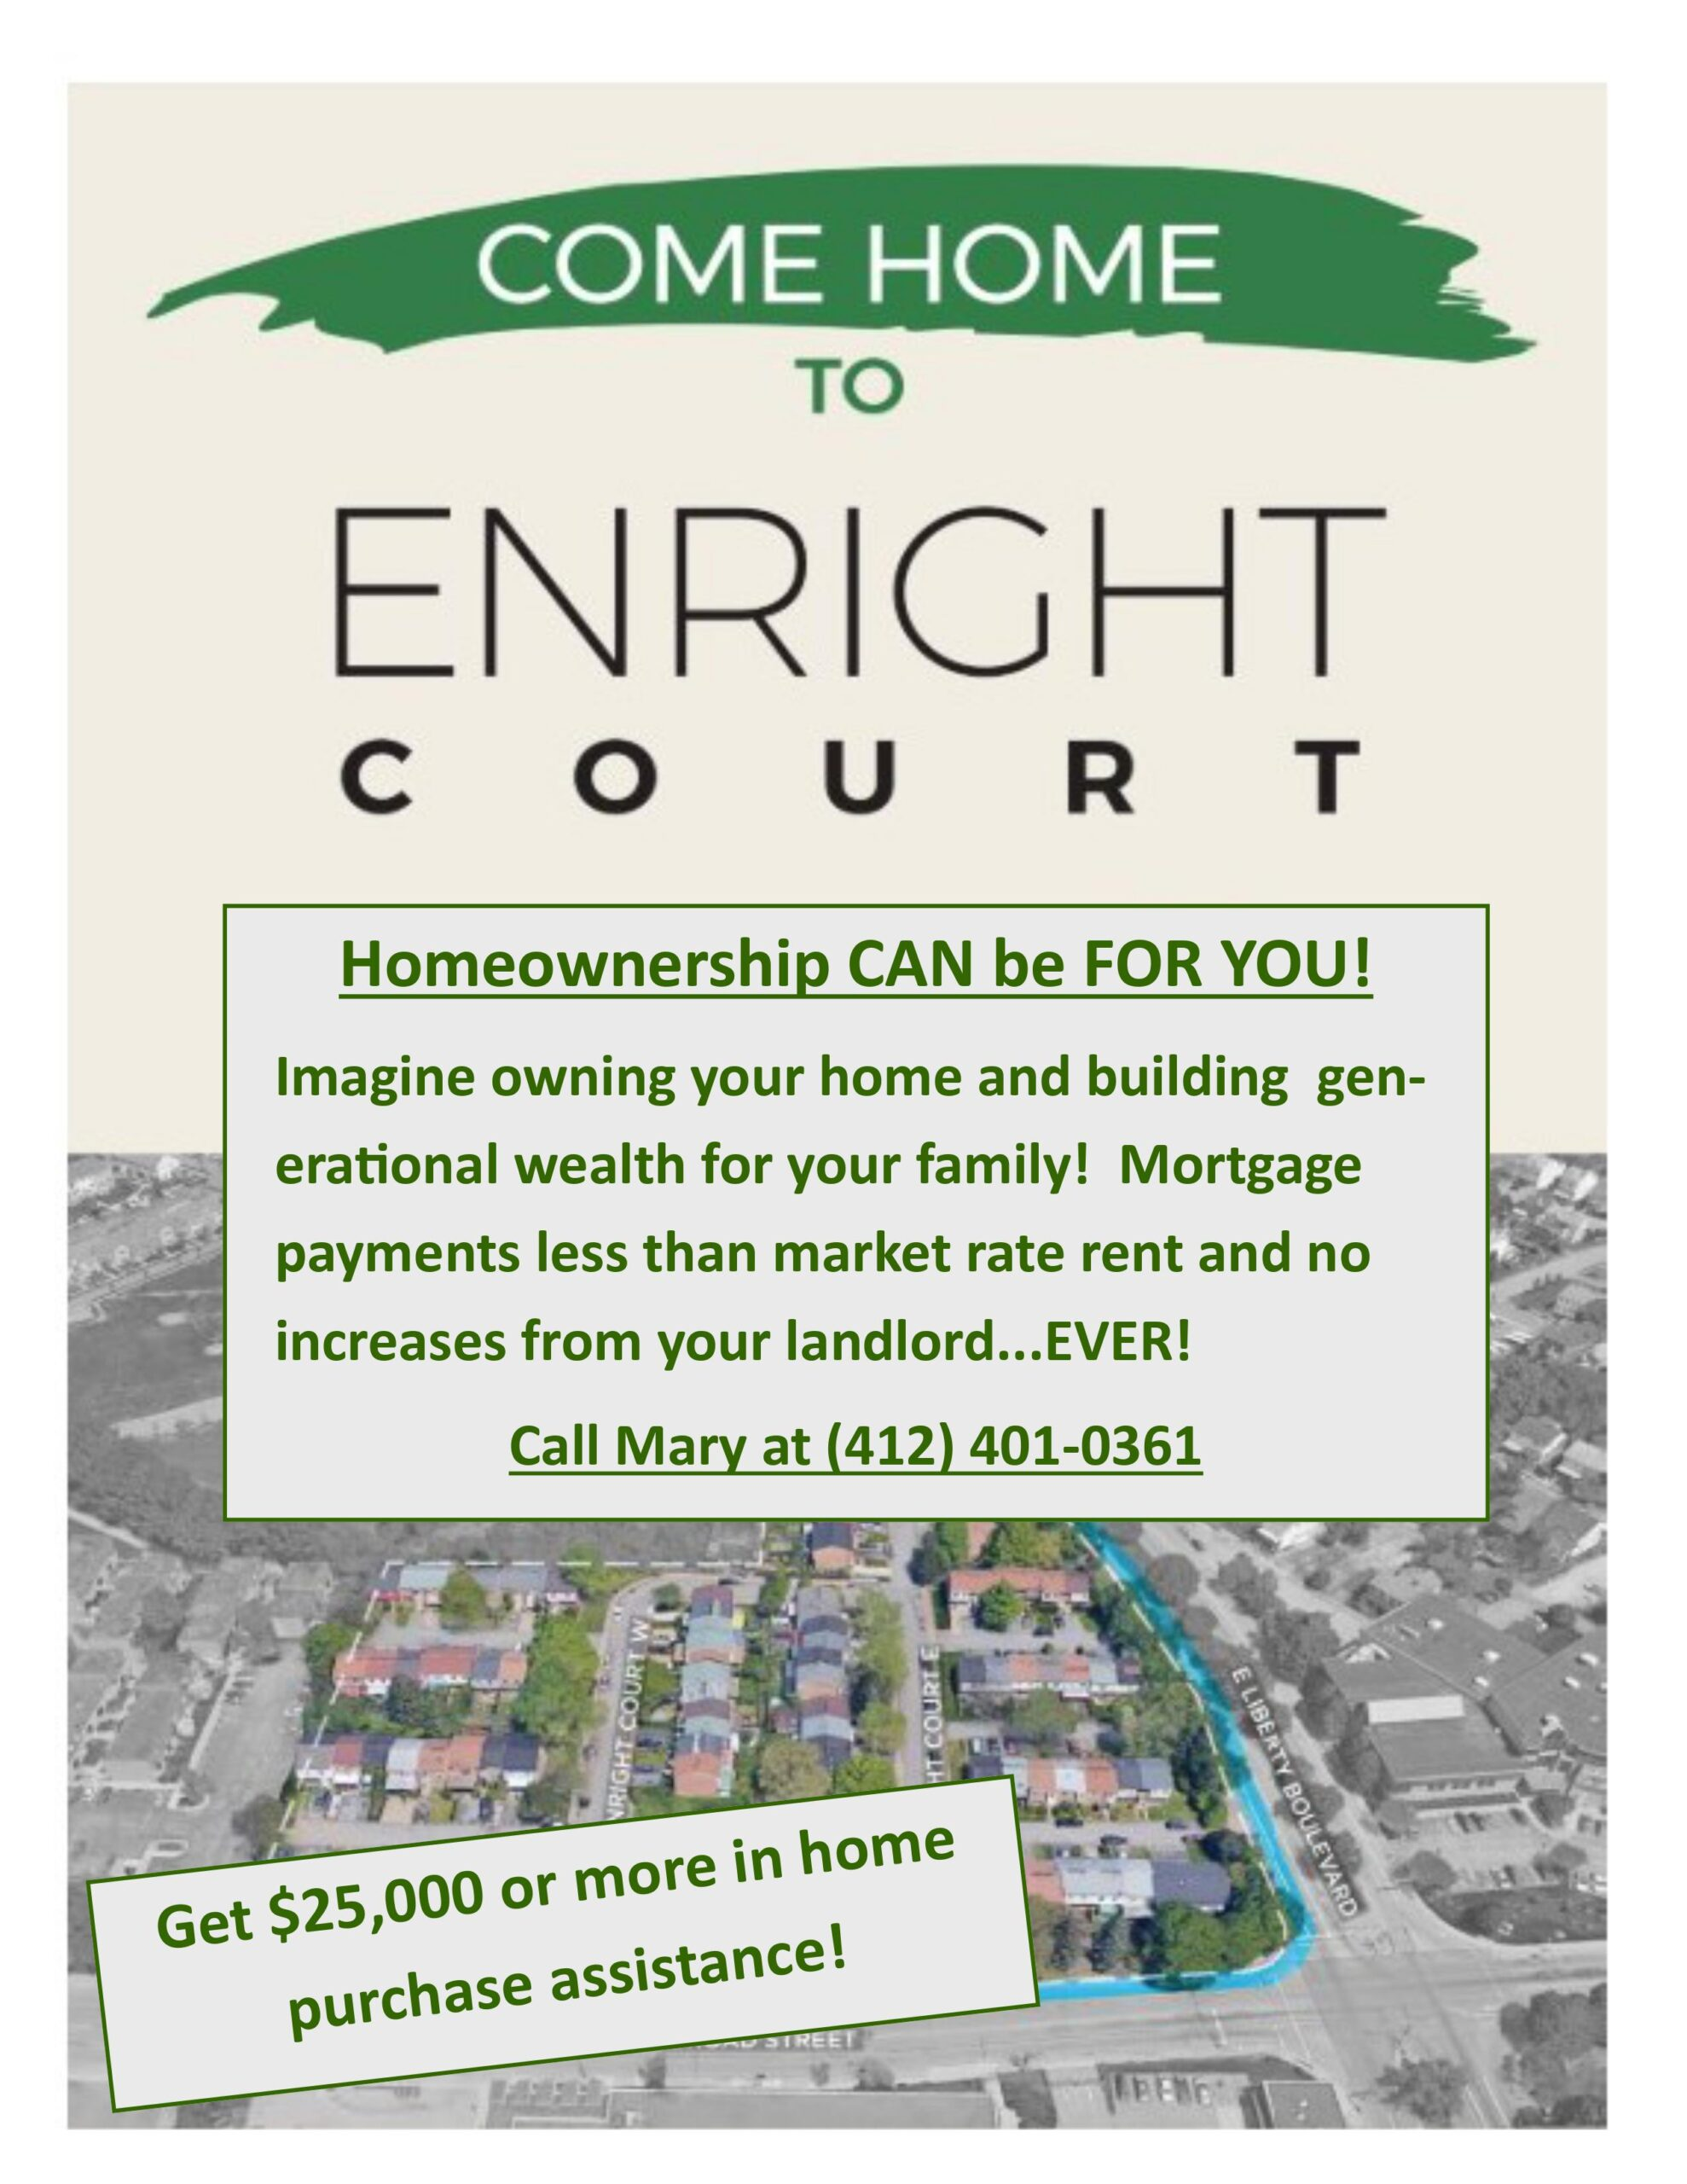 Enright Court Homes for Sale_East Liberty